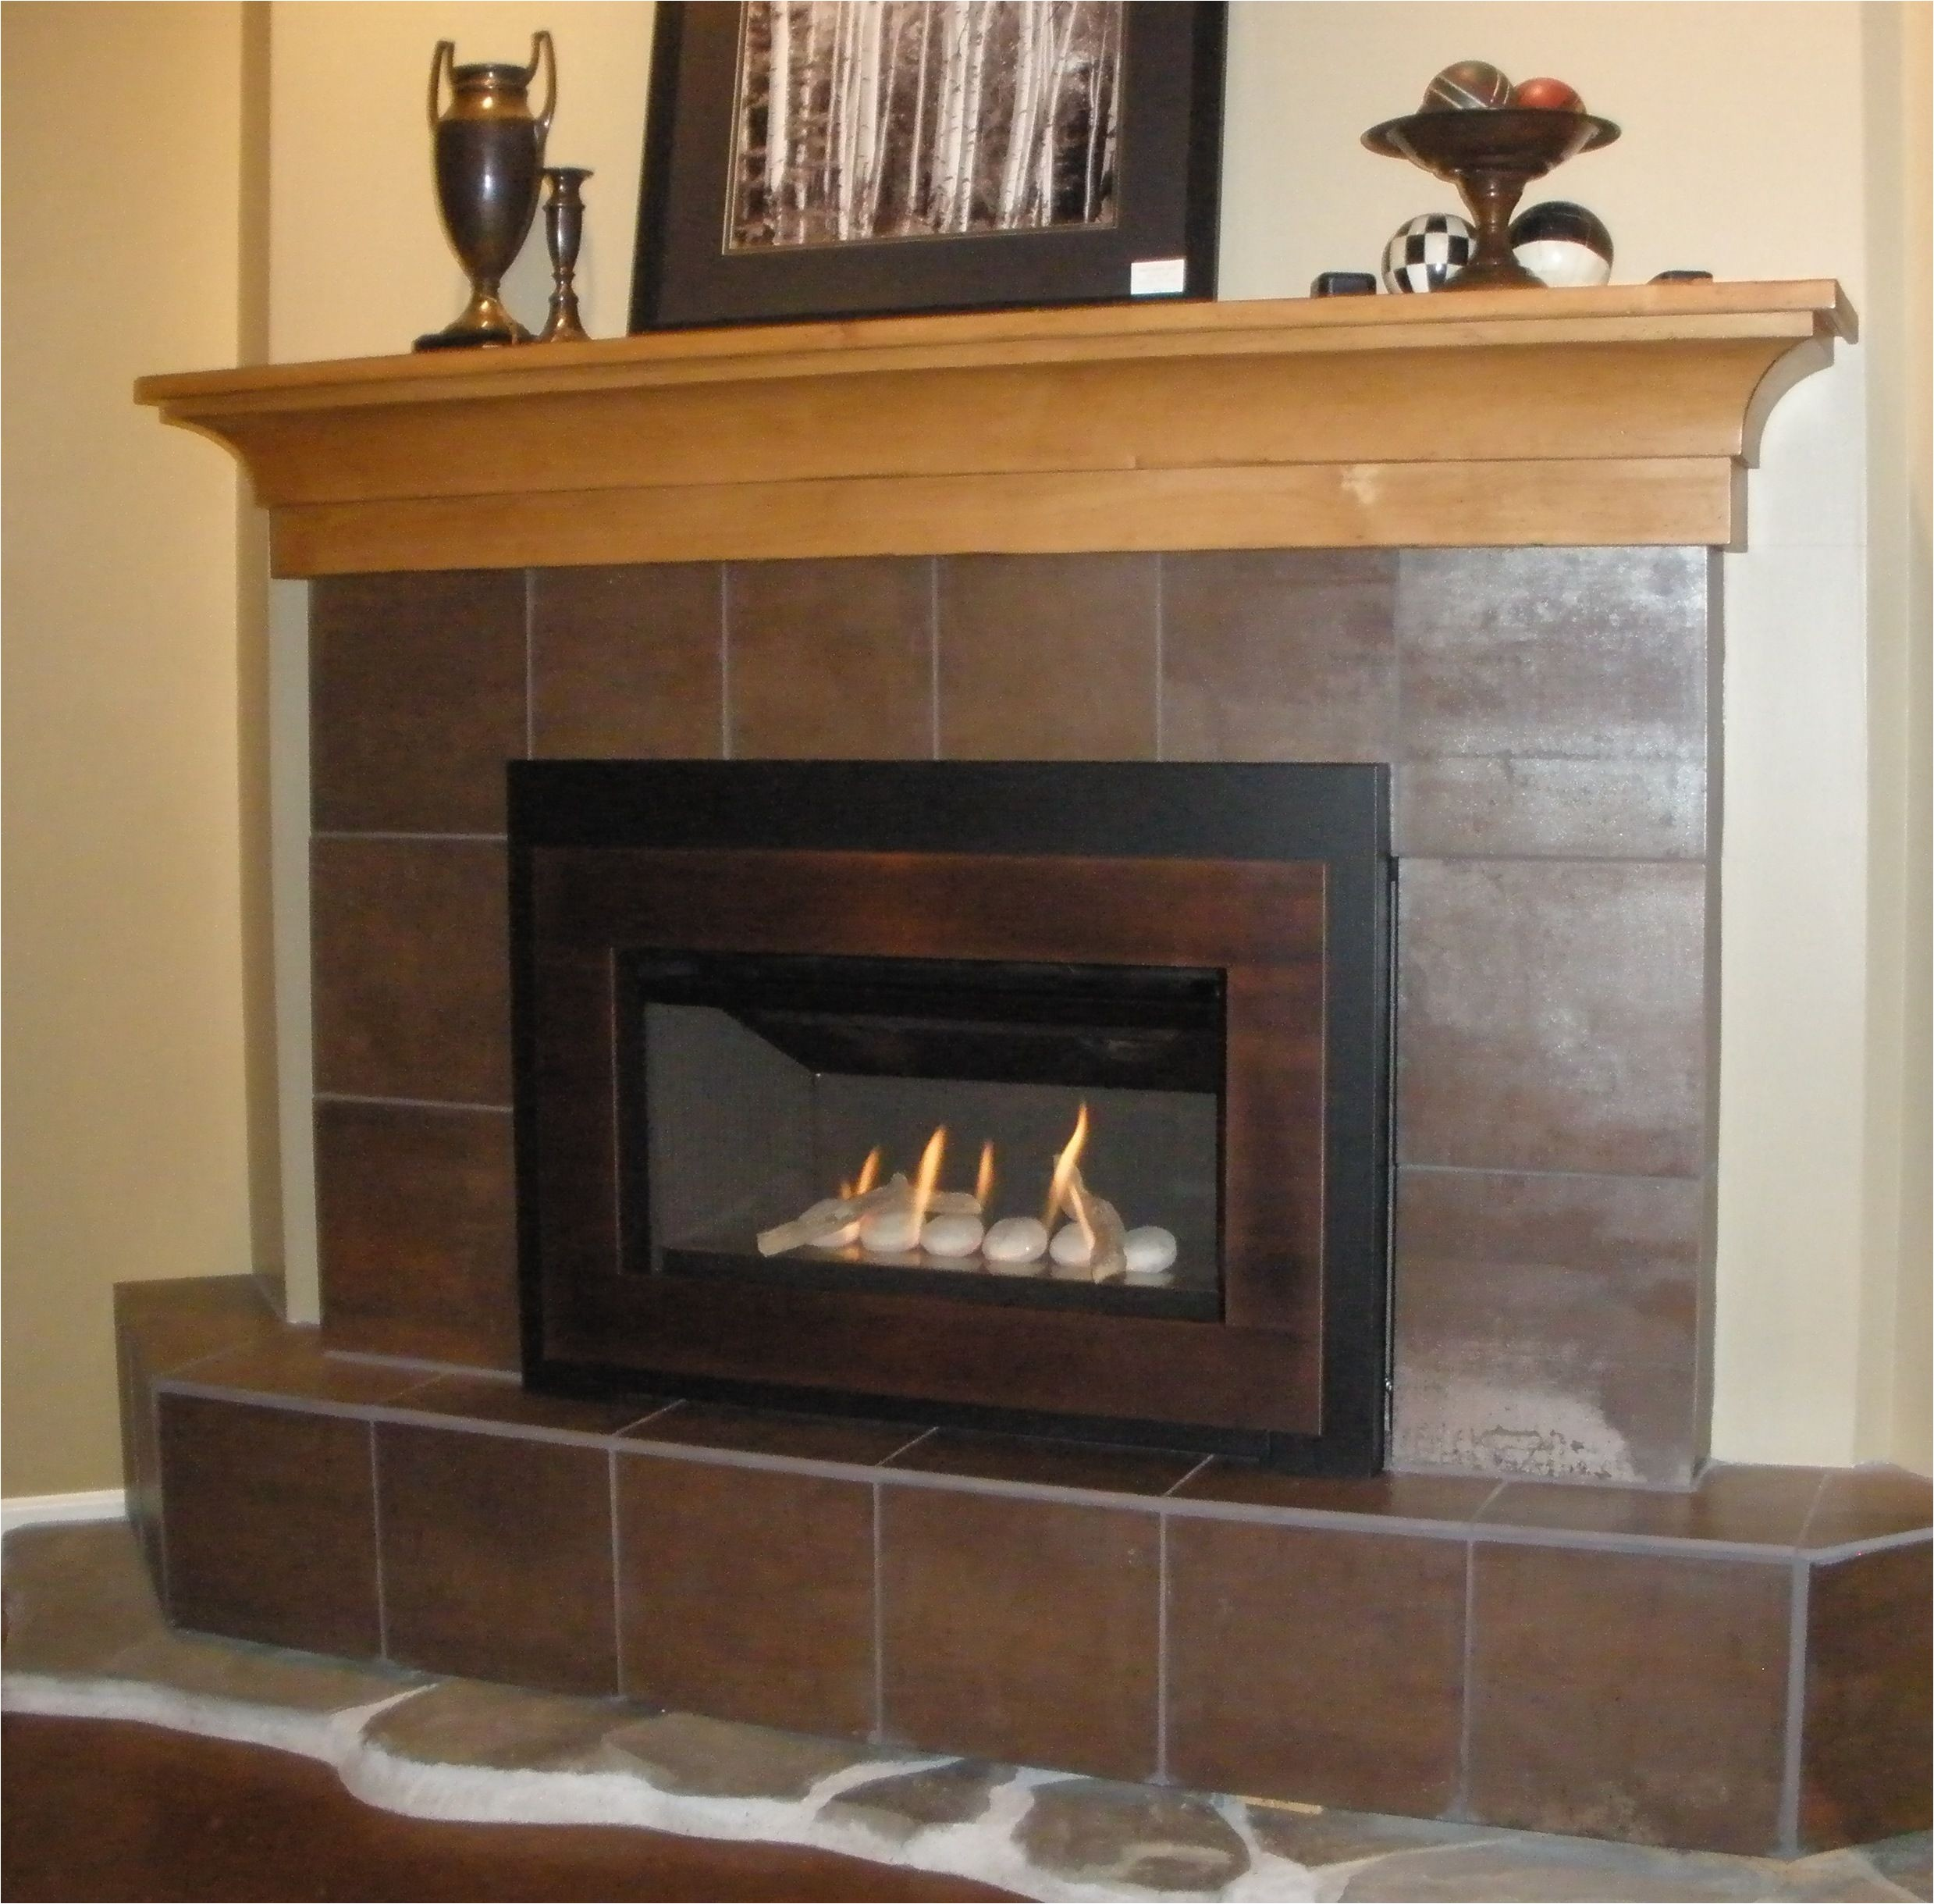 valor g3 739irn gas fireplace insert with creekside rock bed fire effect and brushed copper surround